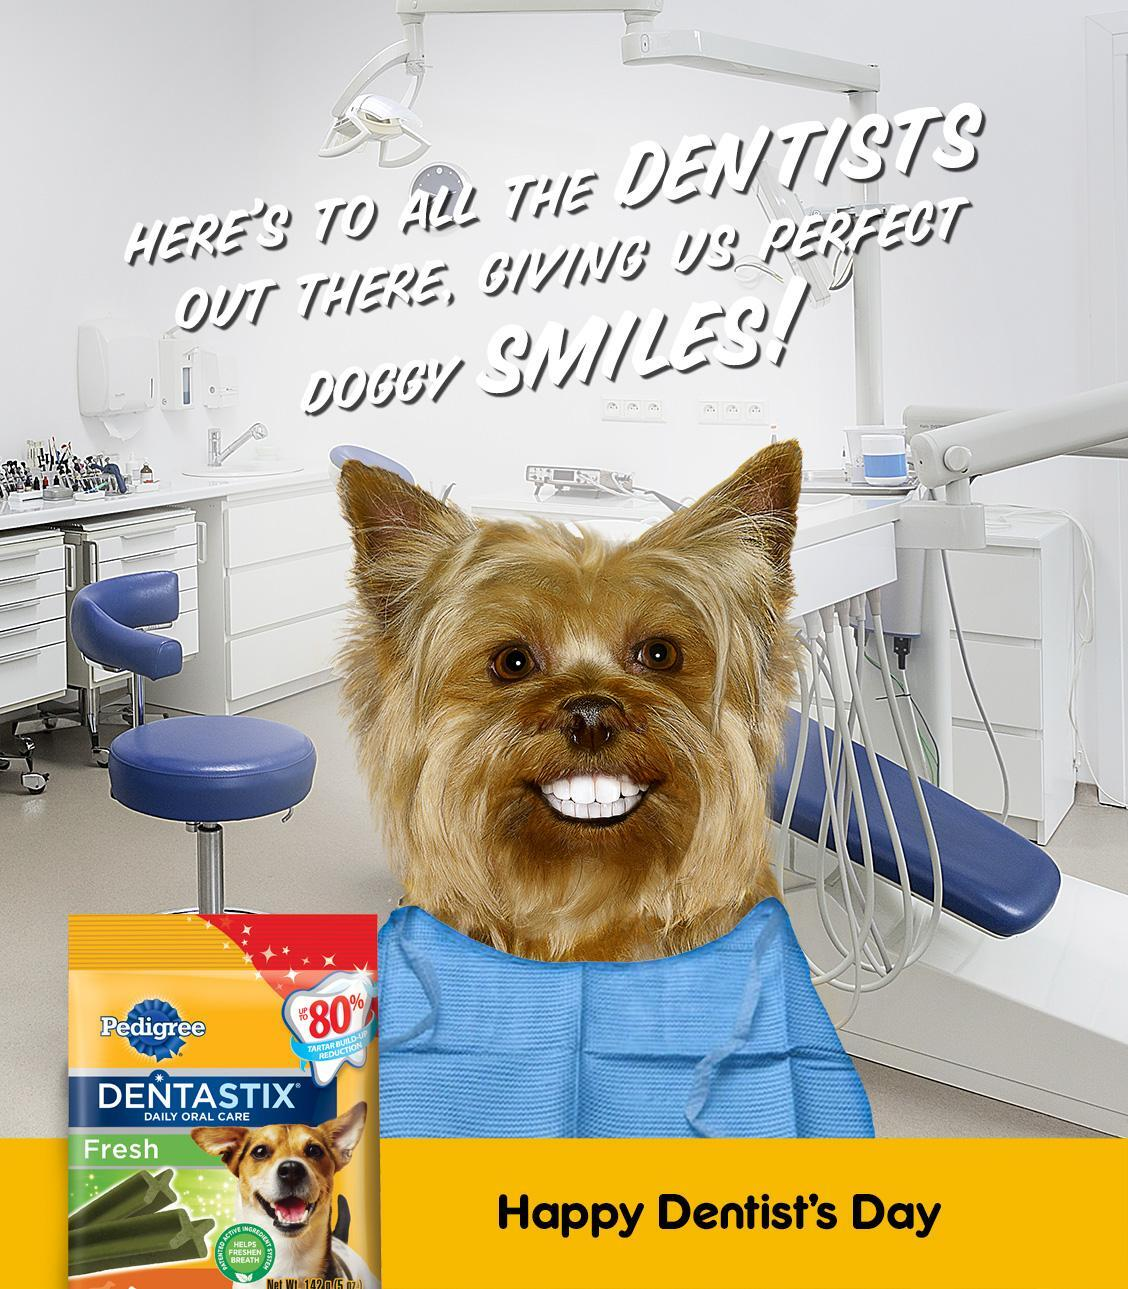 Twitter / PedigreeUS: Happy Dentist's Day! Treat ...